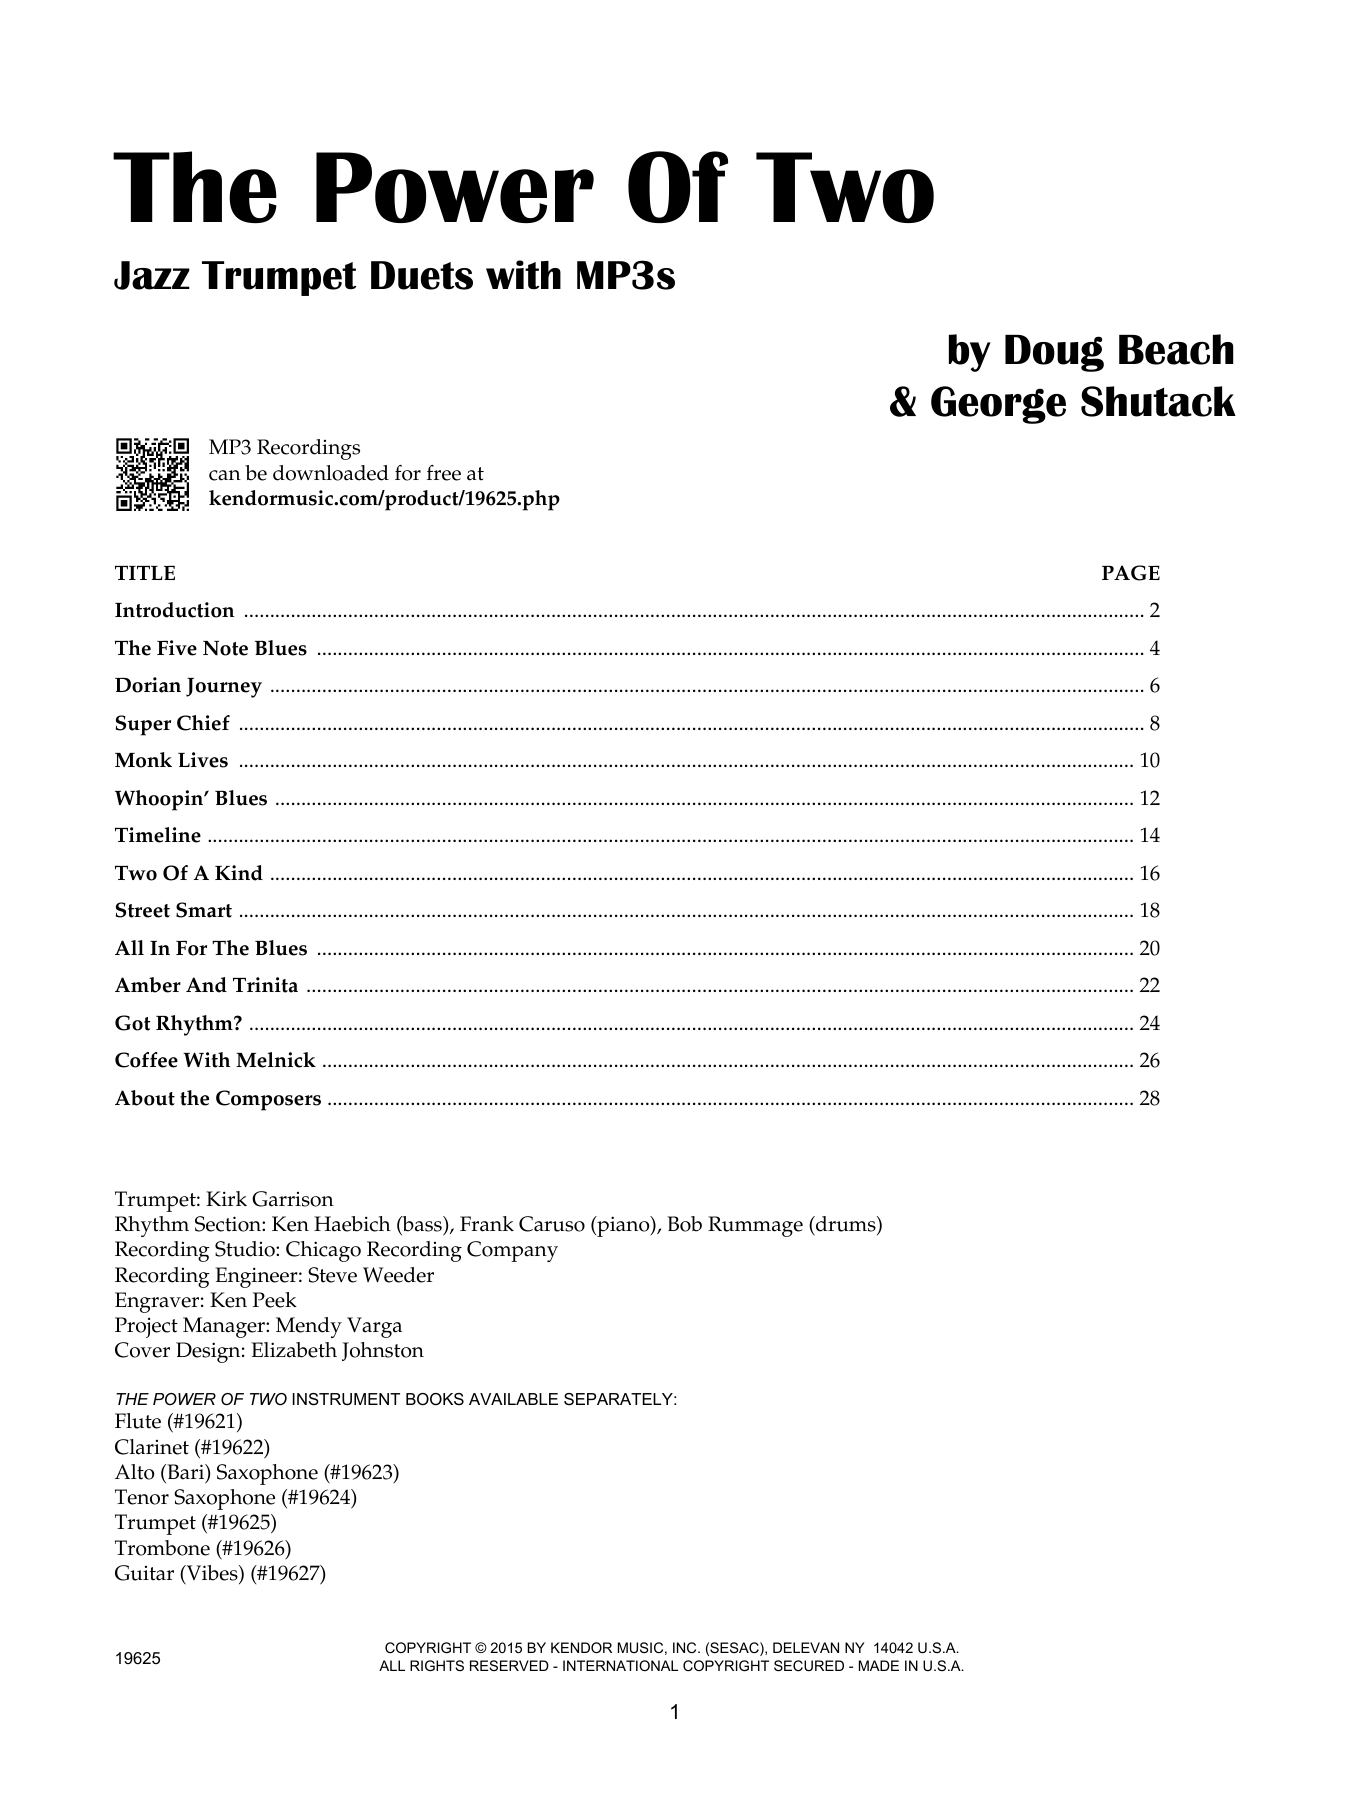 Doug Beach The Power Of Two - Trumpet sheet music notes and chords